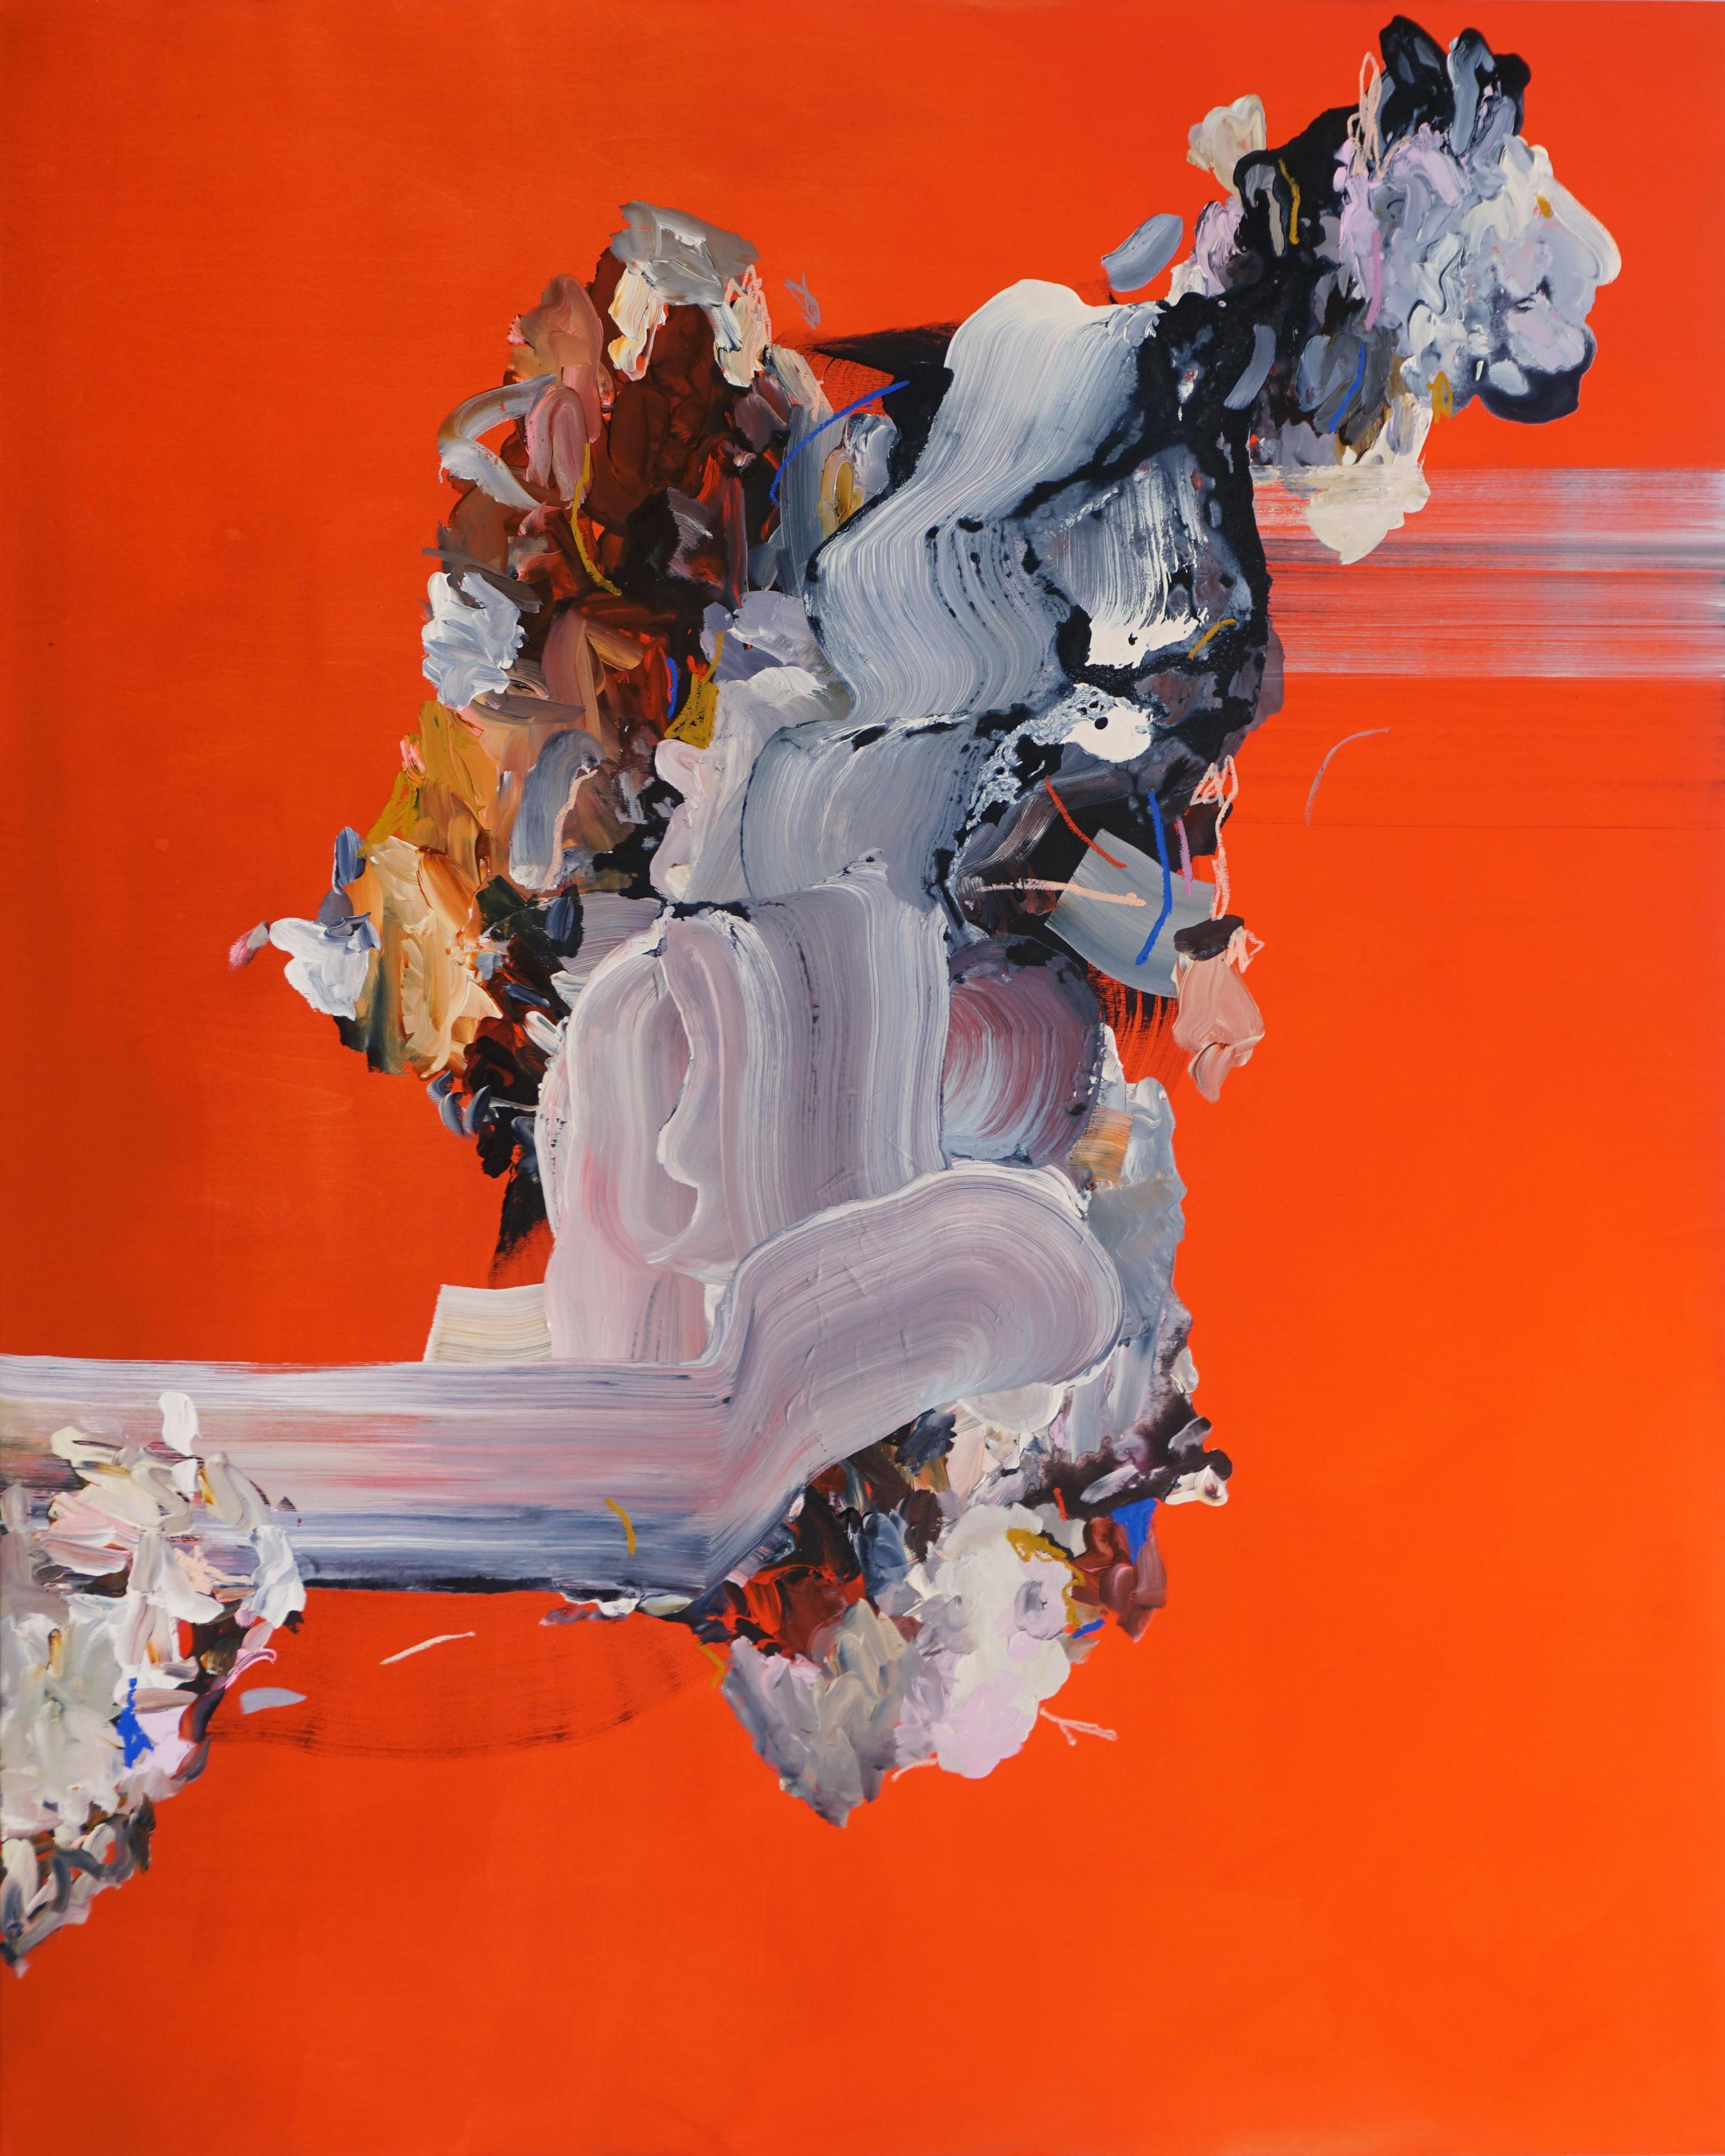 The Spot that Flows at its Centre, Multicolored Abstract Painting on Bright Red